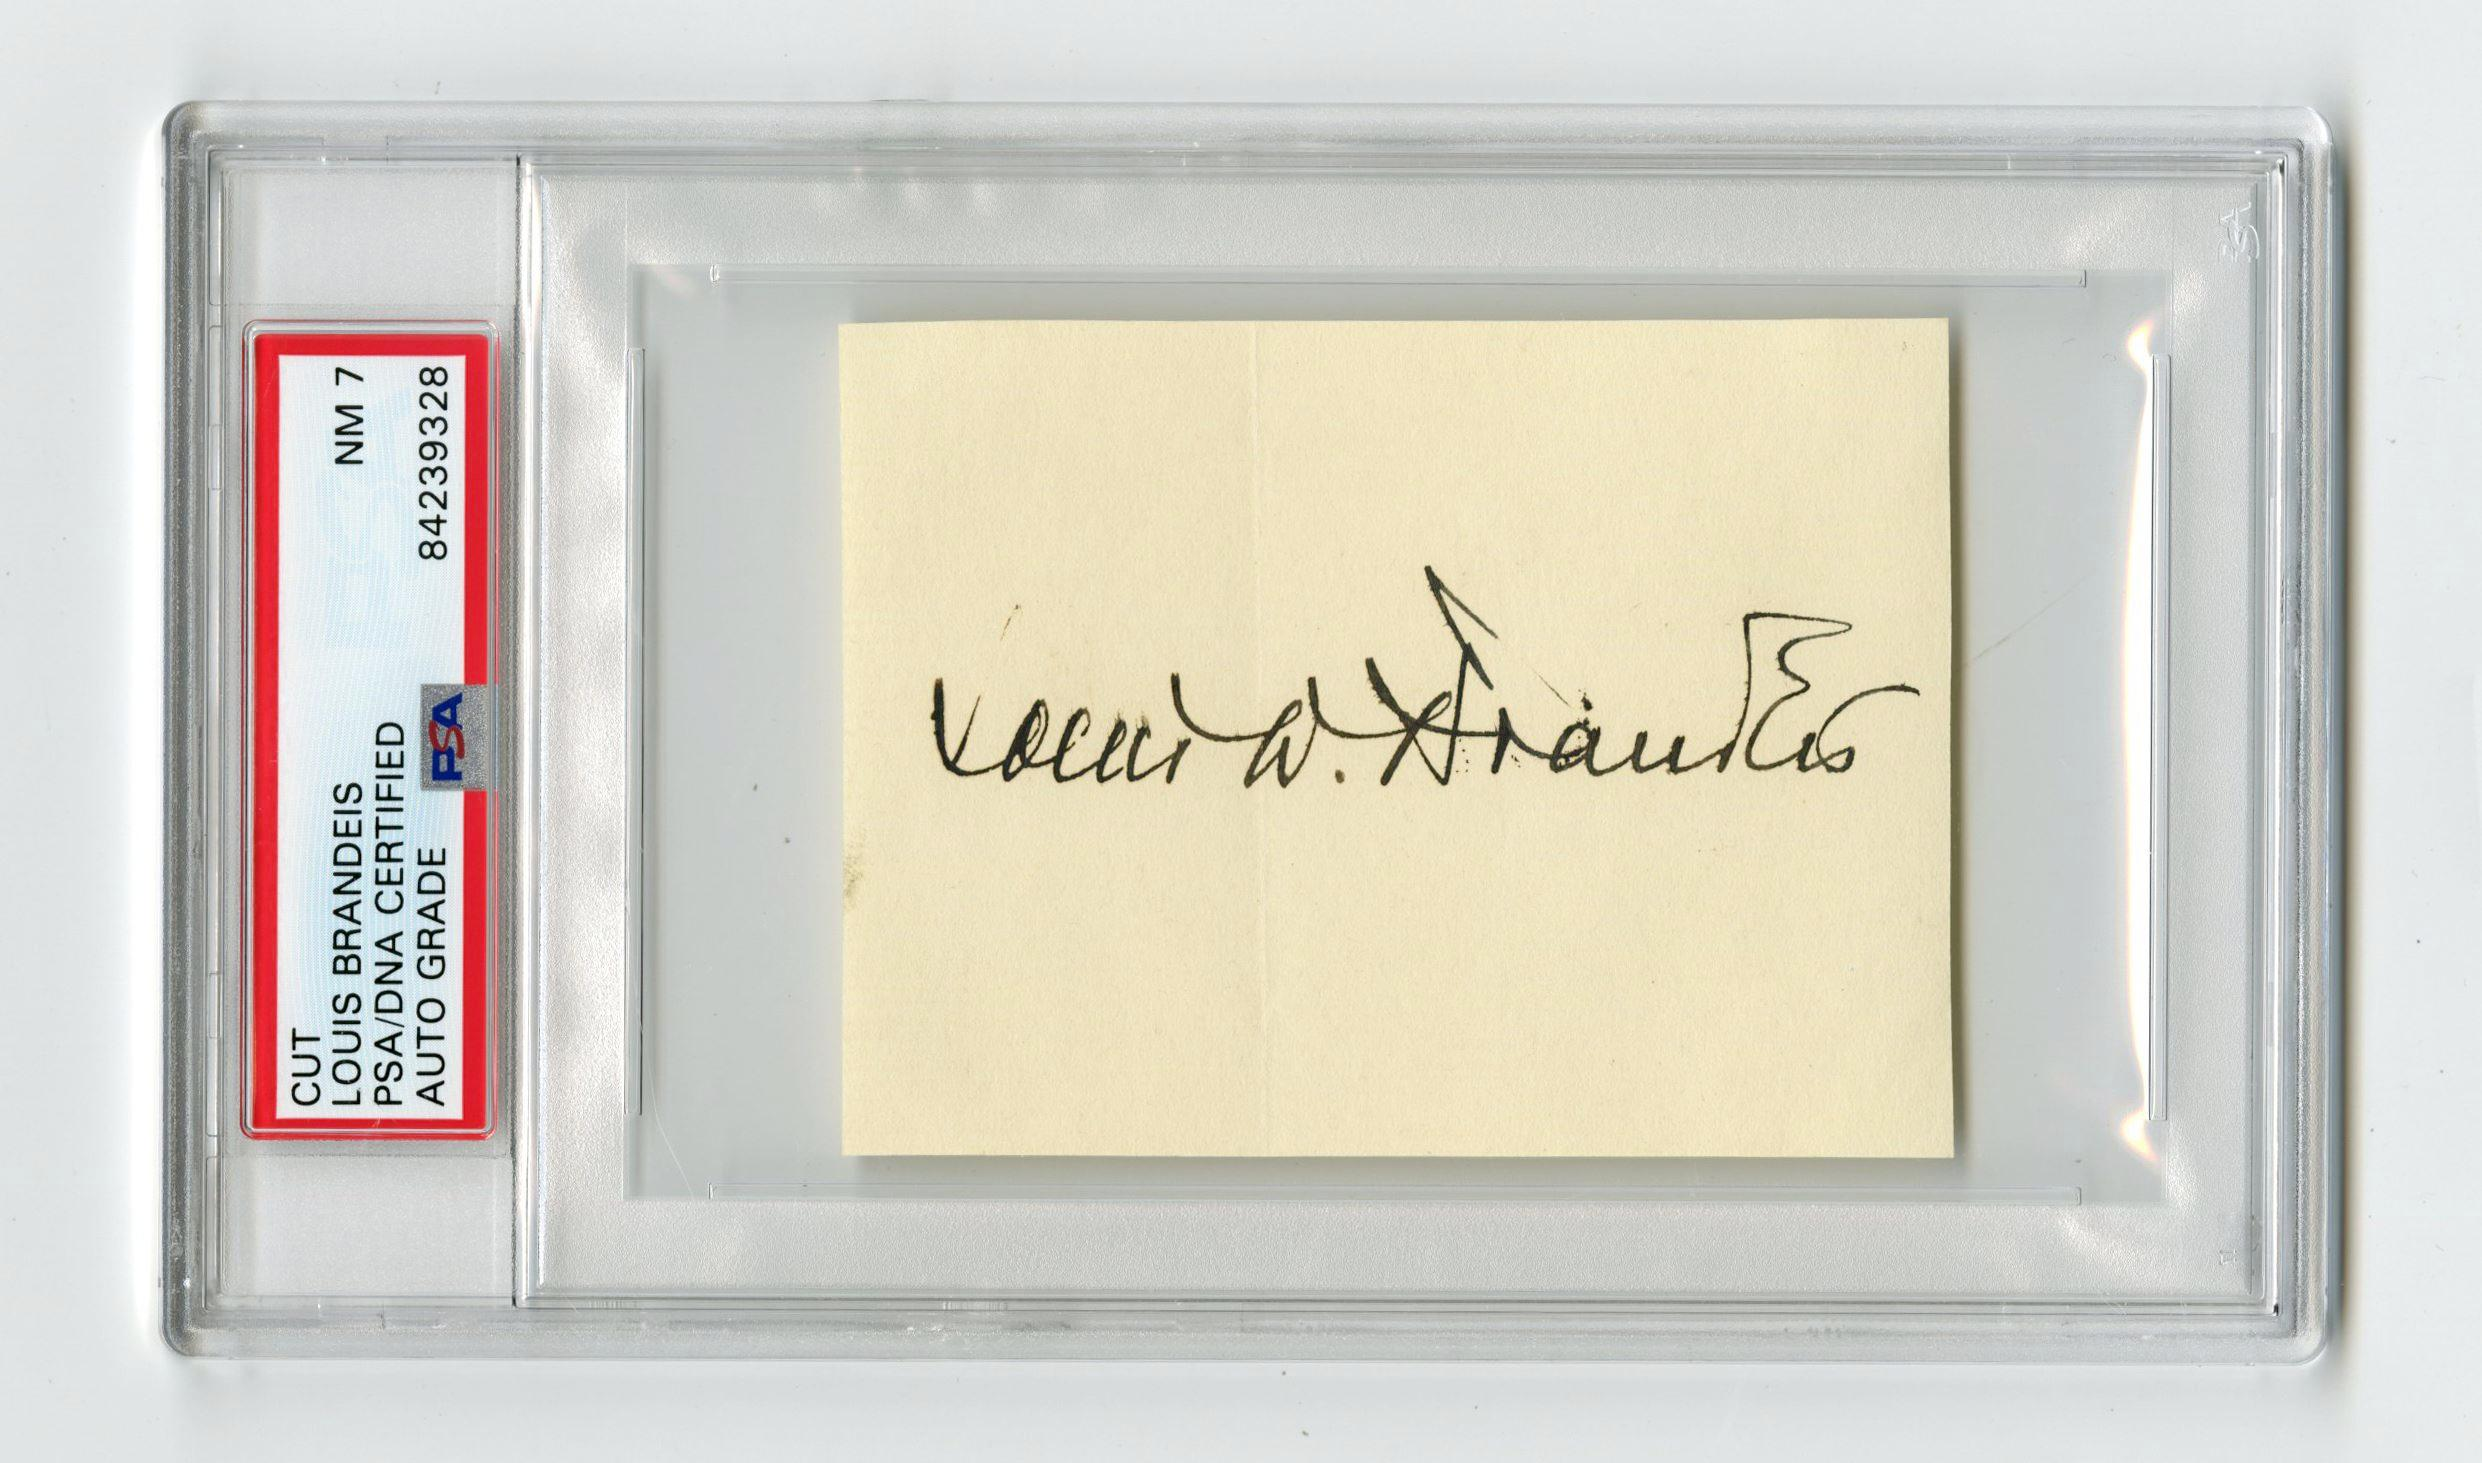 Supreme Court Justice Louis D. Brandeis Boldly Signed Card, PSA Slabbed and Graded NM 7